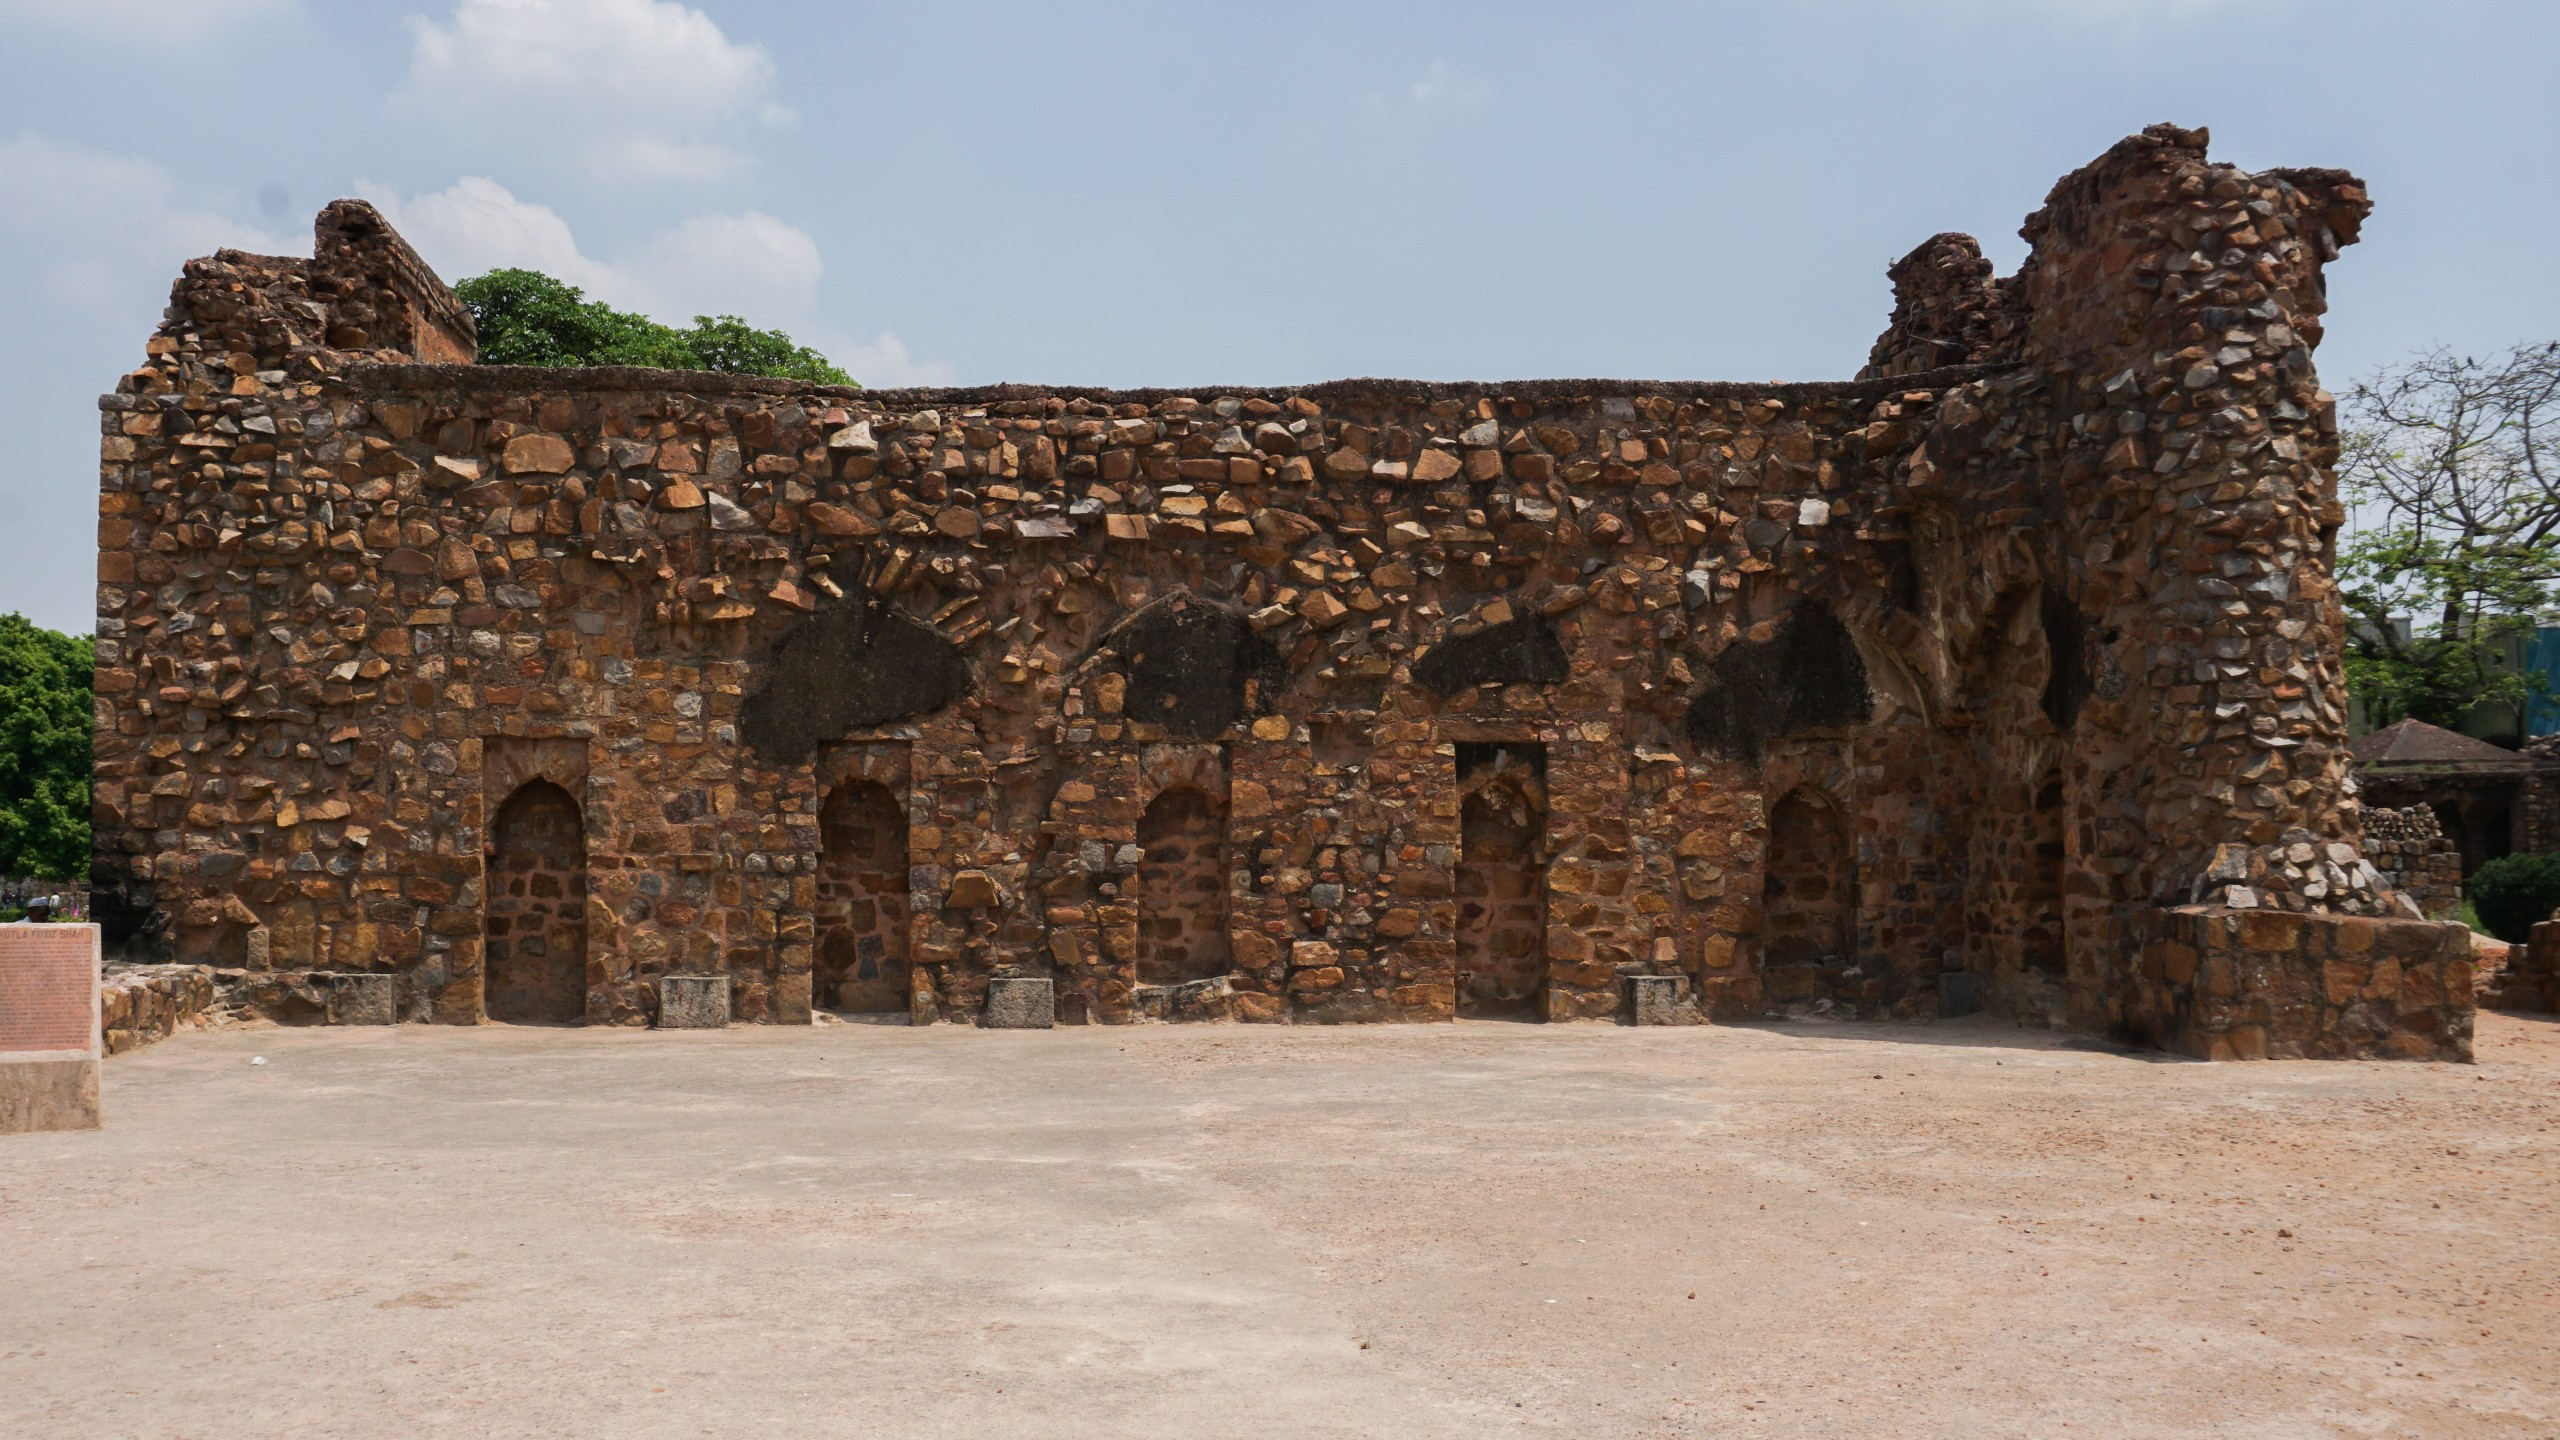 Historic Indian architecture of Red Bricks